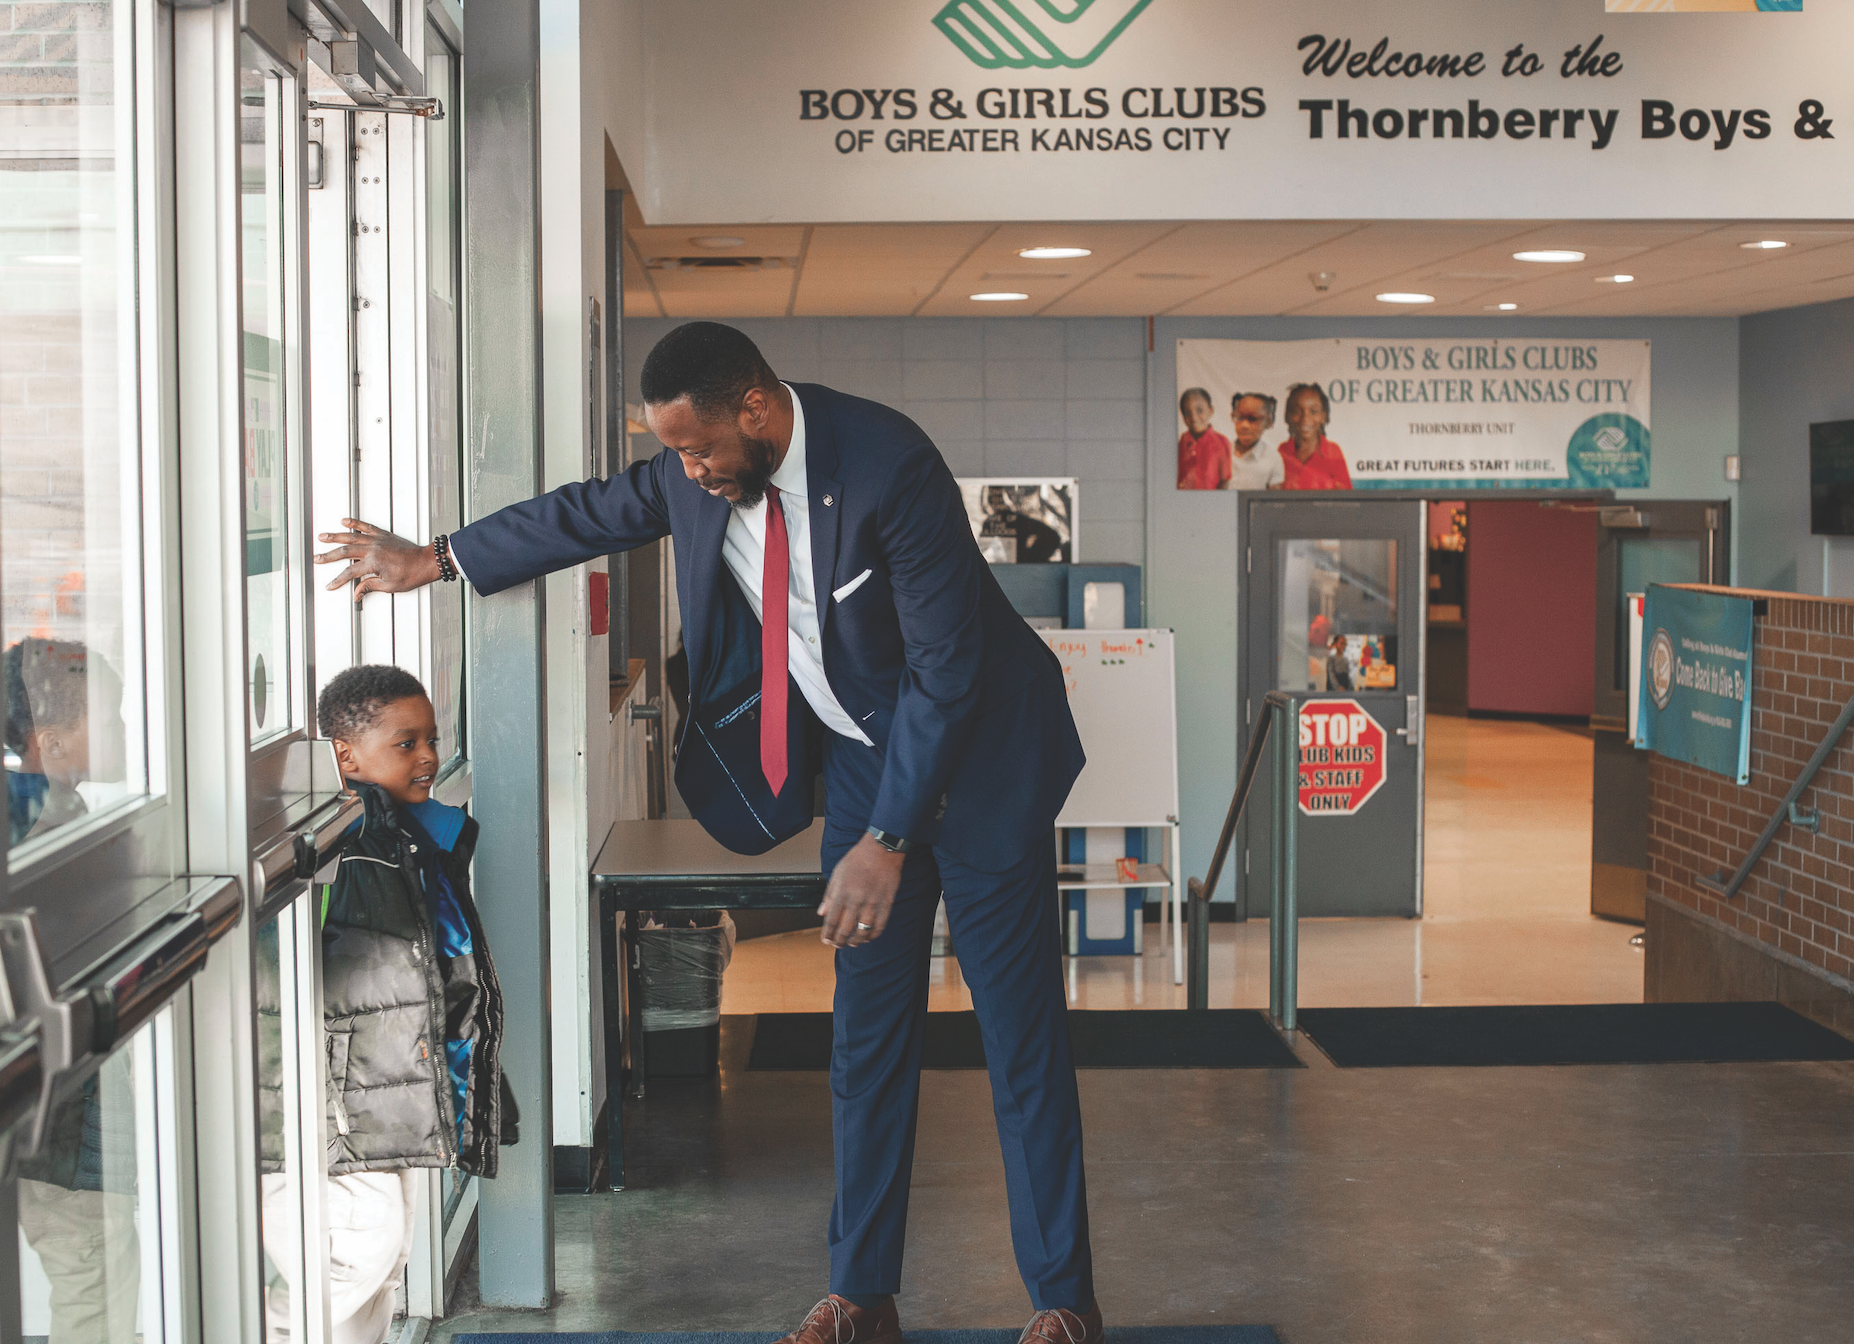 Boys & Girls Clubs of Greater Kansas City – Dr. Dred Scott